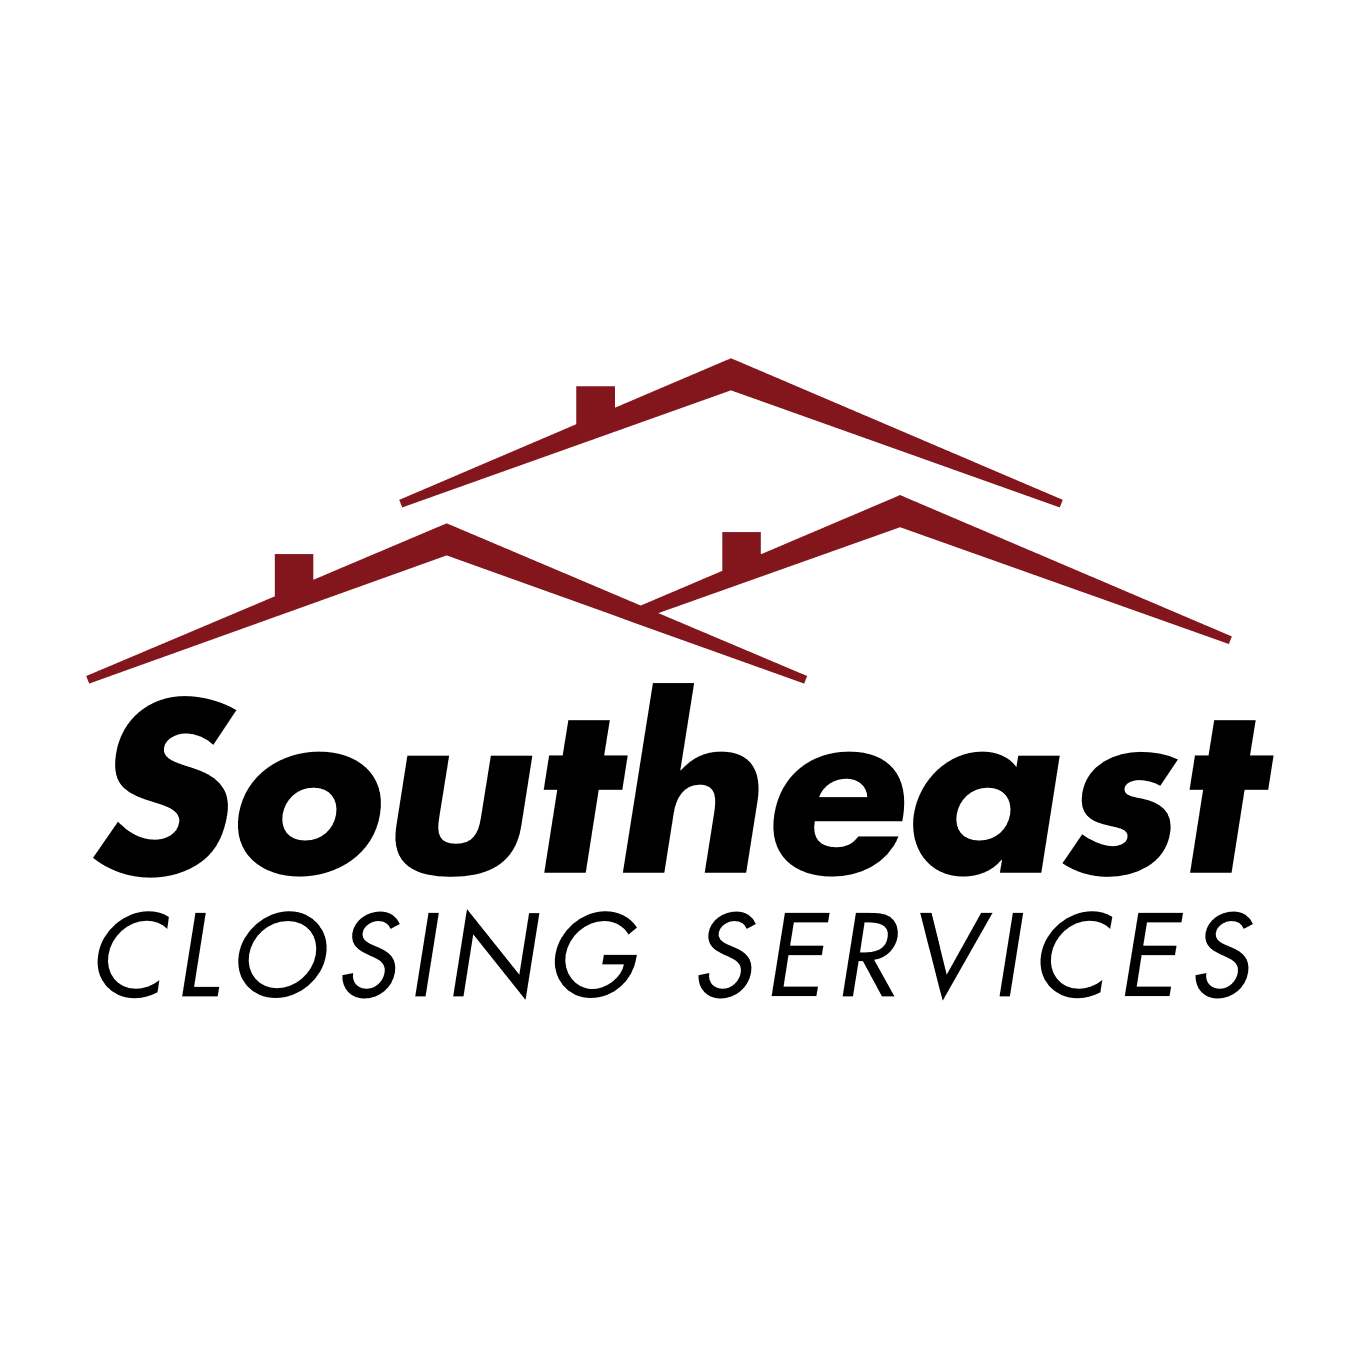 Southeast Closing Services LLC